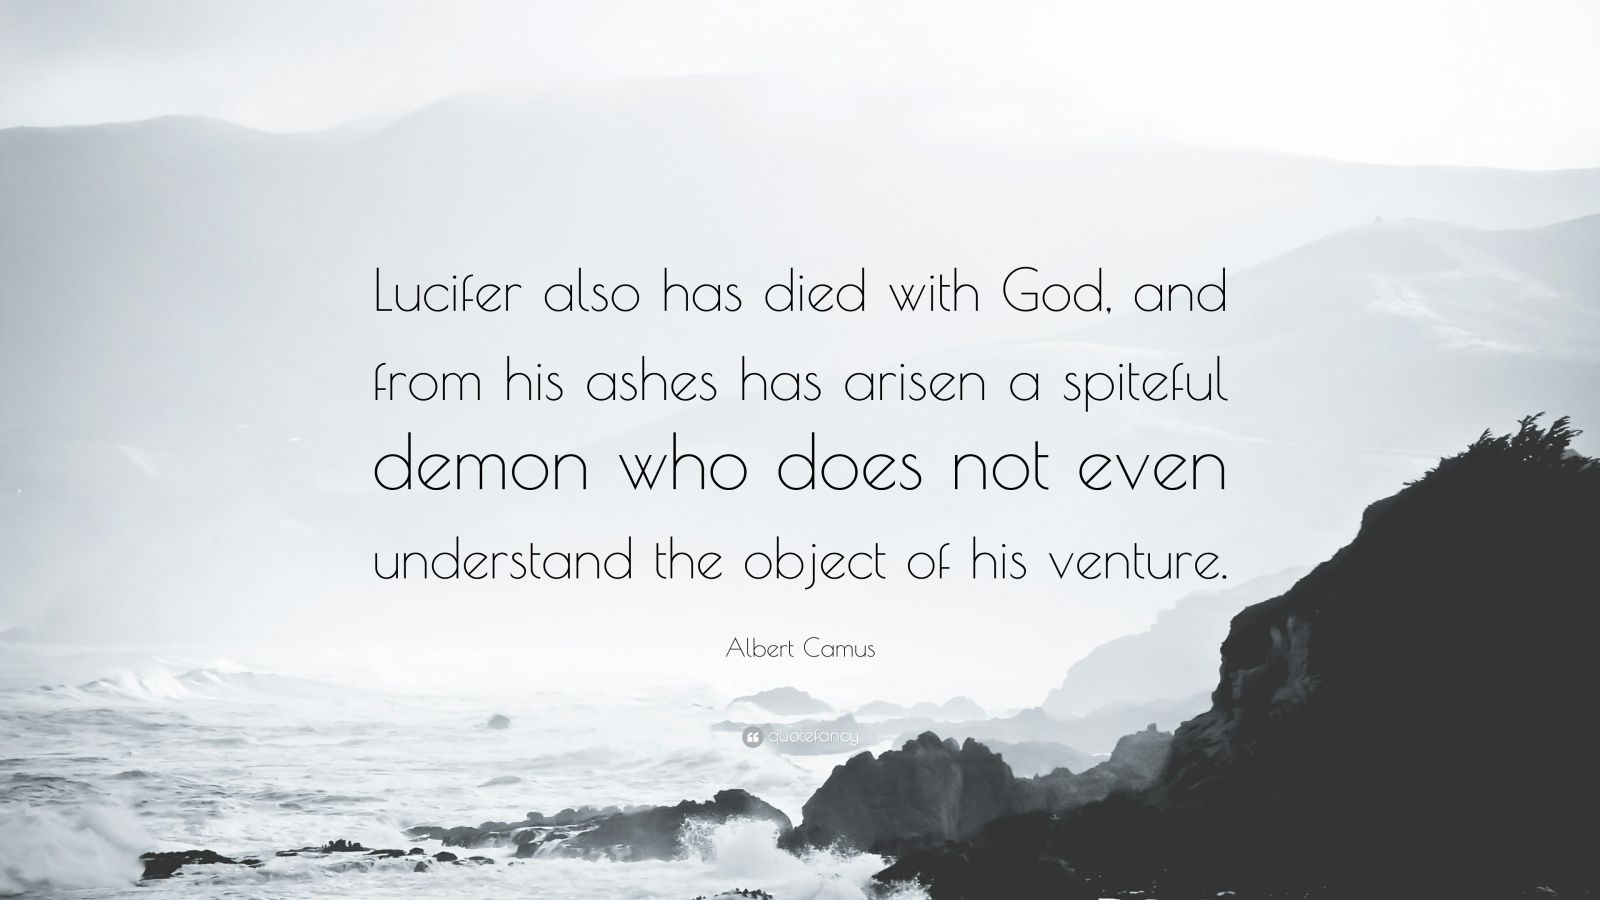 """Albert Camus Quote: """"Lucifer also has died with God, and from his ashes has arisen a spiteful demon who does not even understand the object of his venture."""""""